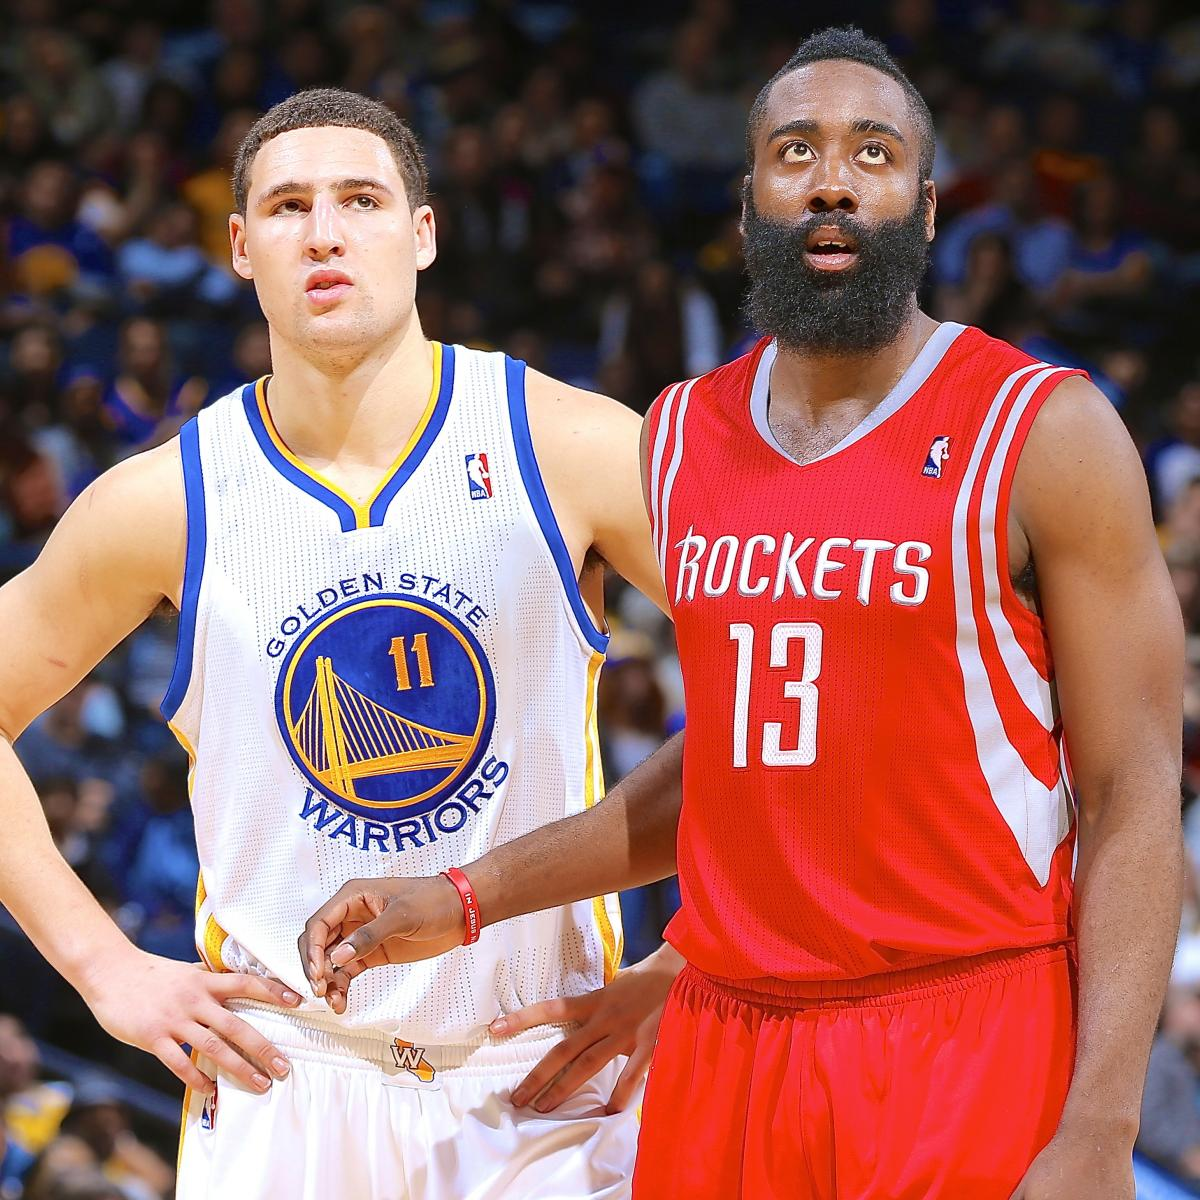 Rockets Vs Warriors Harden: Houston Rockets Vs. Golden State Warriors: Live Score And